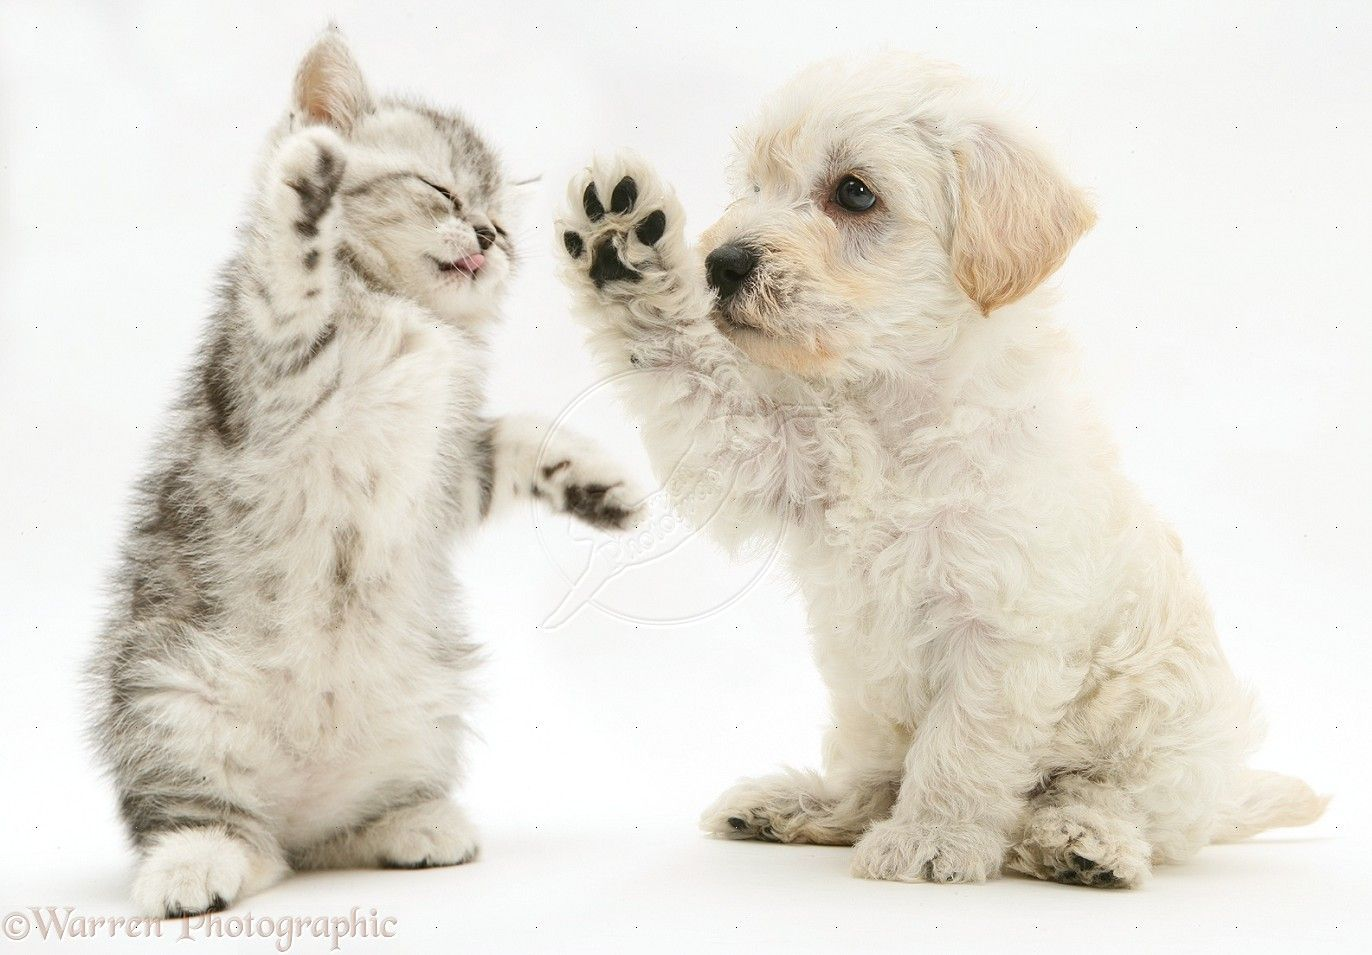 Puppies And Kittens Pictures Pets Woodle Puppy And Kitten Boxing Photo Wp16066 Cute Cats And Dogs Cute Dogs Images Cute Puppies And Kittens